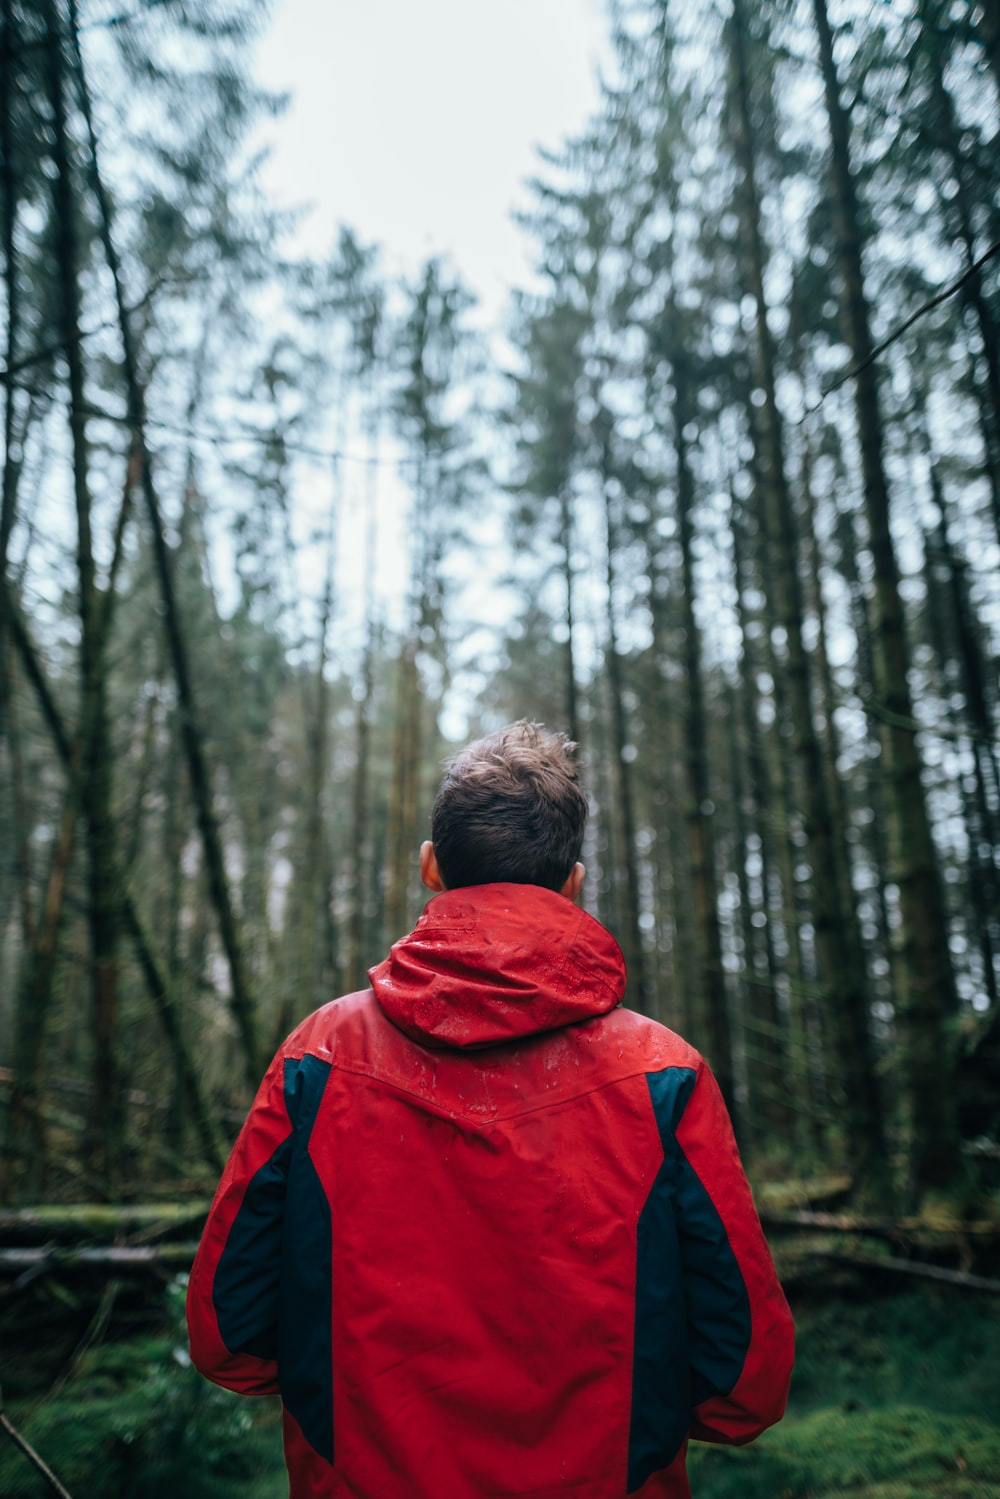 tilt-shift photography of man standing surrounded by trees during daytime